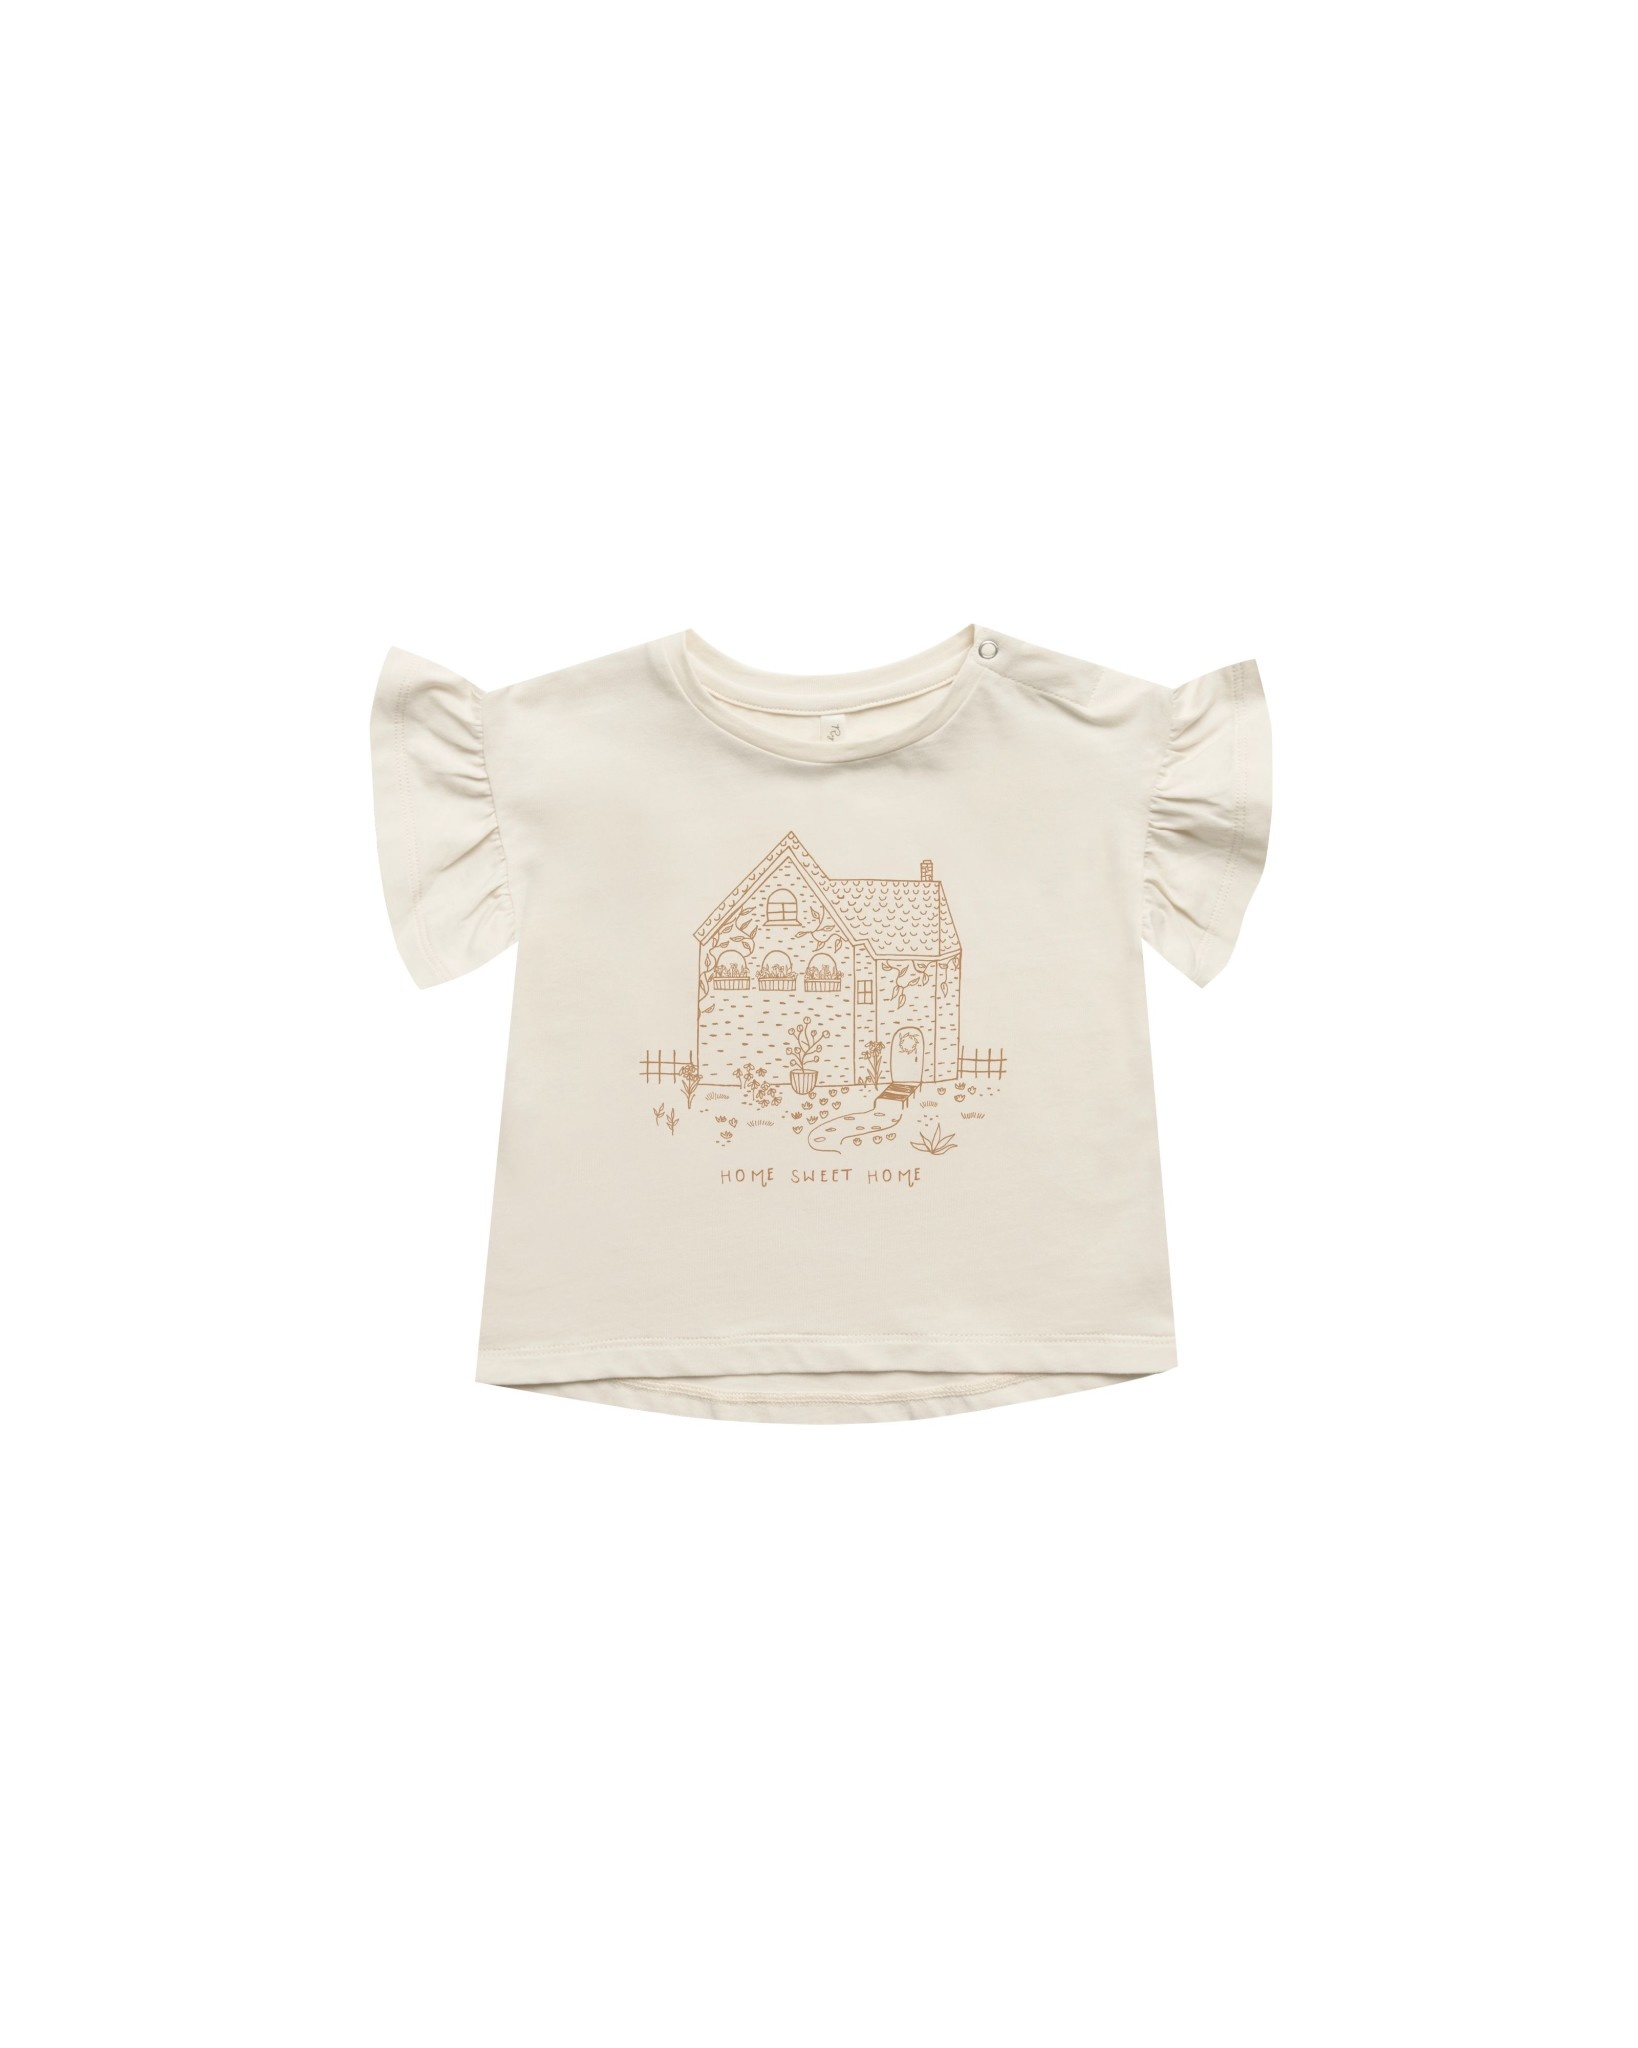 RYLEE AND CRU Home Sweet Home Baby Flutter Tee